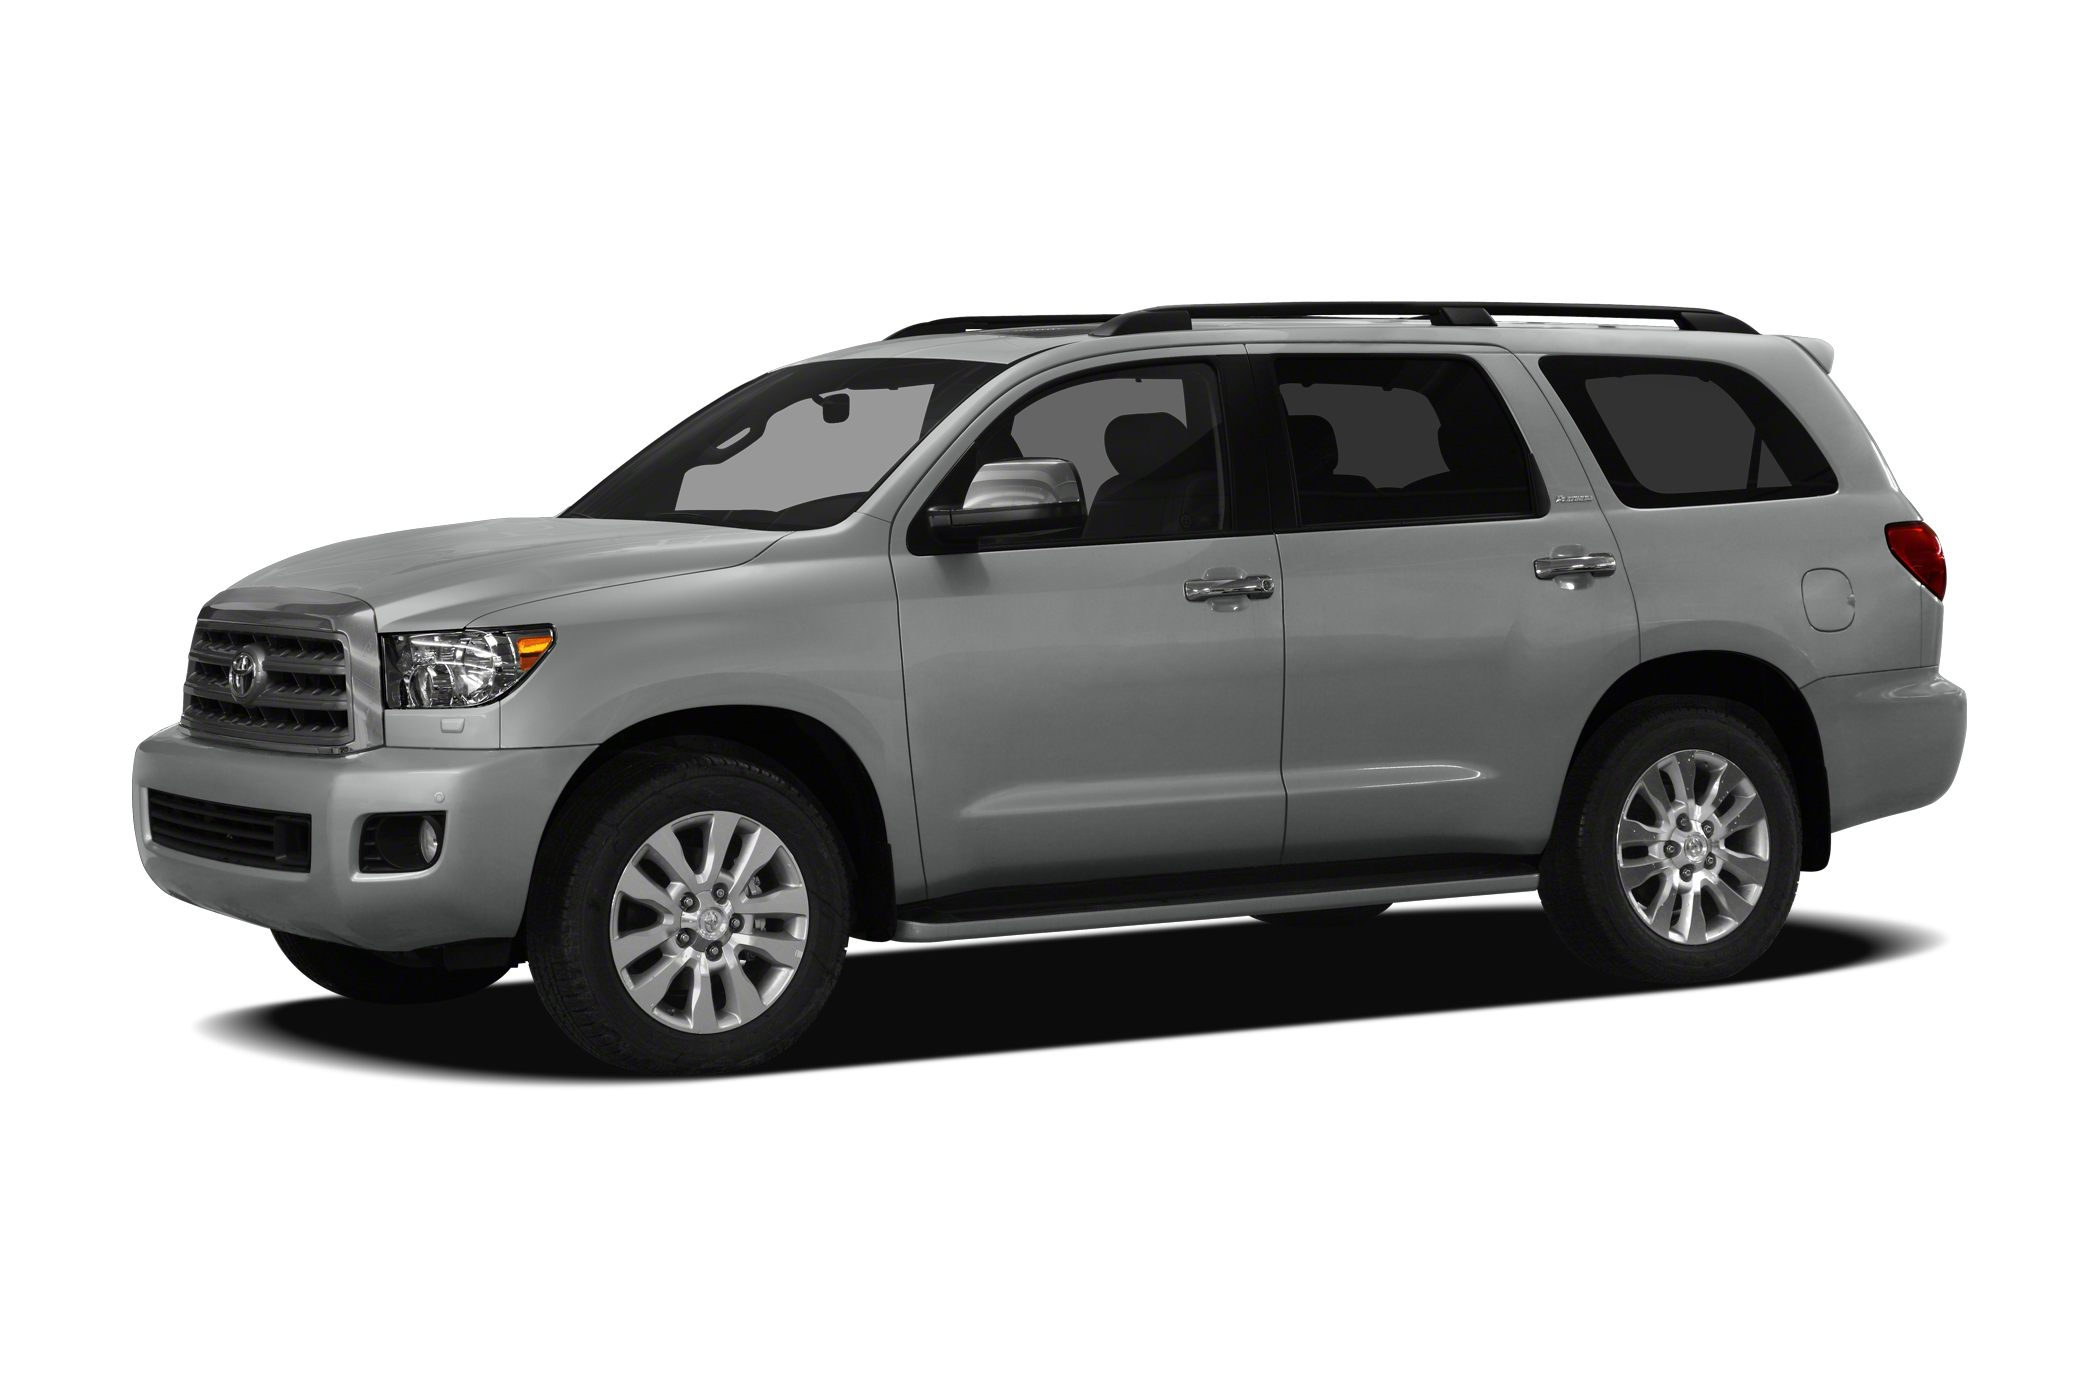 2012 Toyota Sequoia Limited SUV for sale in Dallas for $40,410 with 36,929 miles.